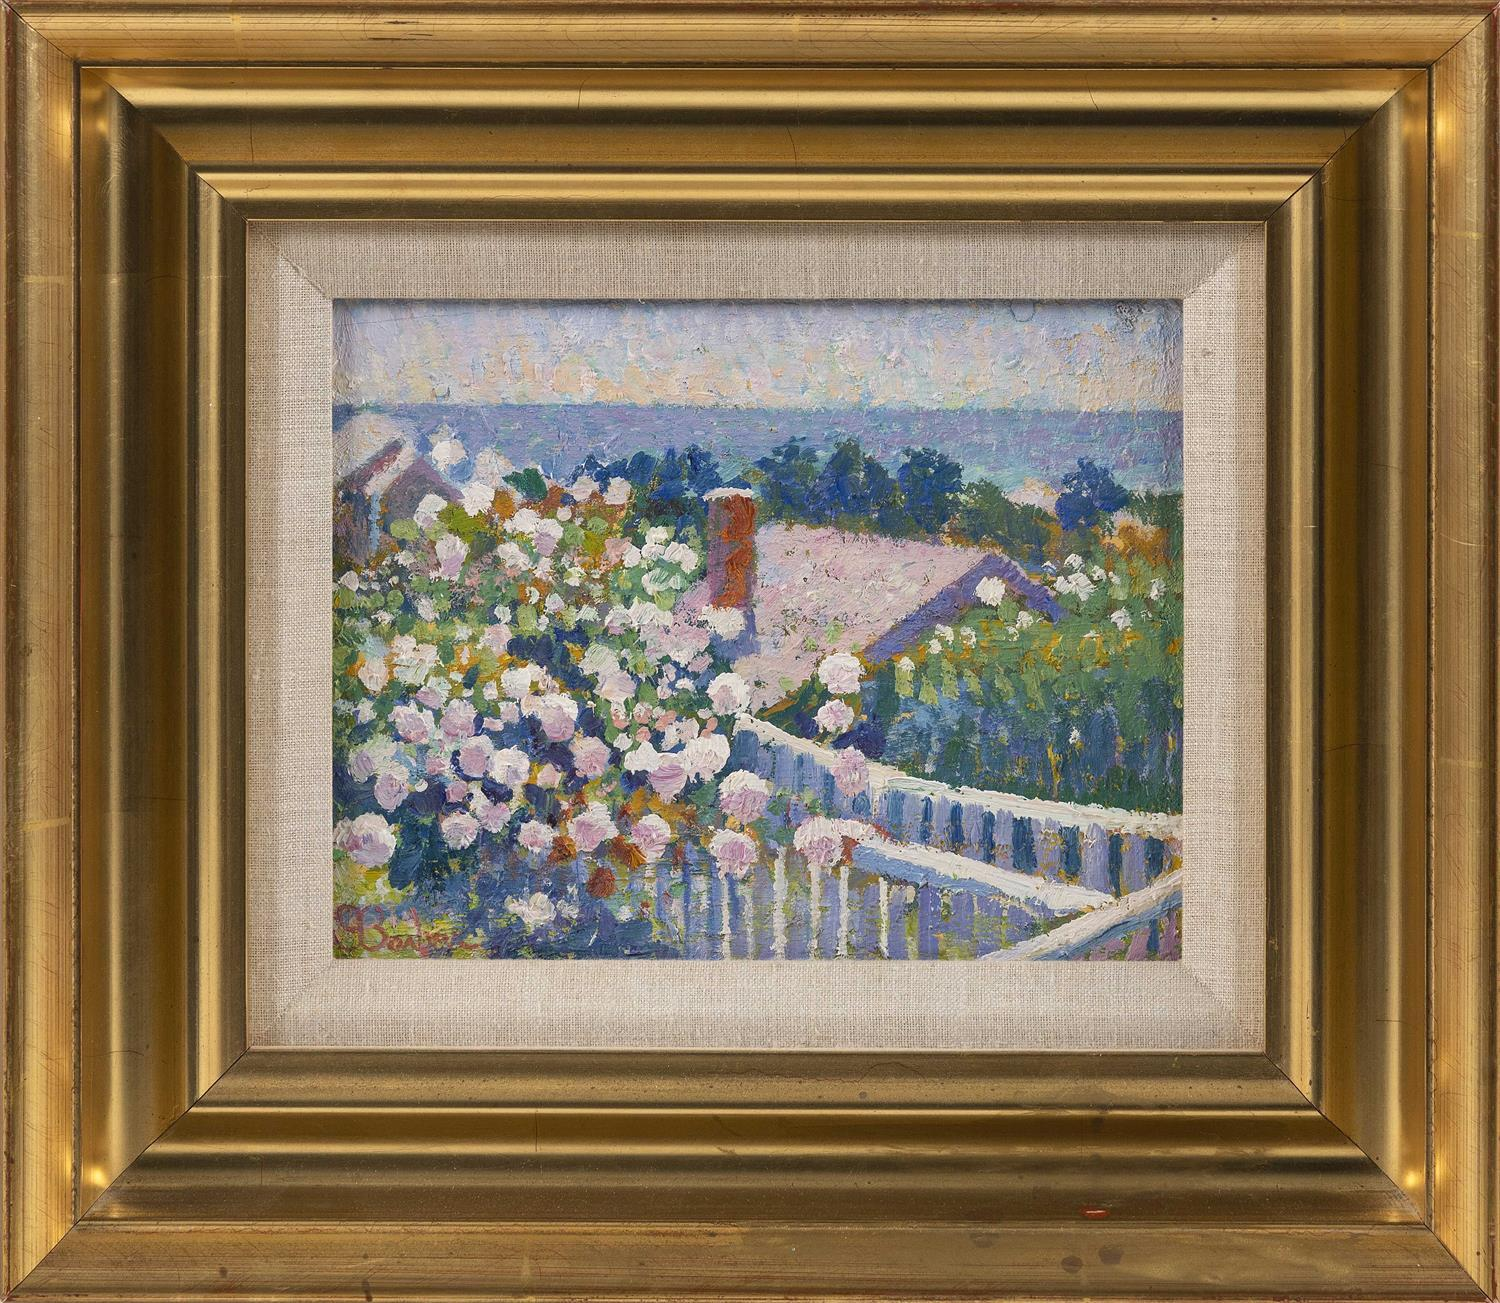 "SAM BARBER, Massachusetts/Italy, b. 1943, ""Nantucket Roses""., Oil on panel, 8"" x 10"". Framed 14.75"" x 16.75""."